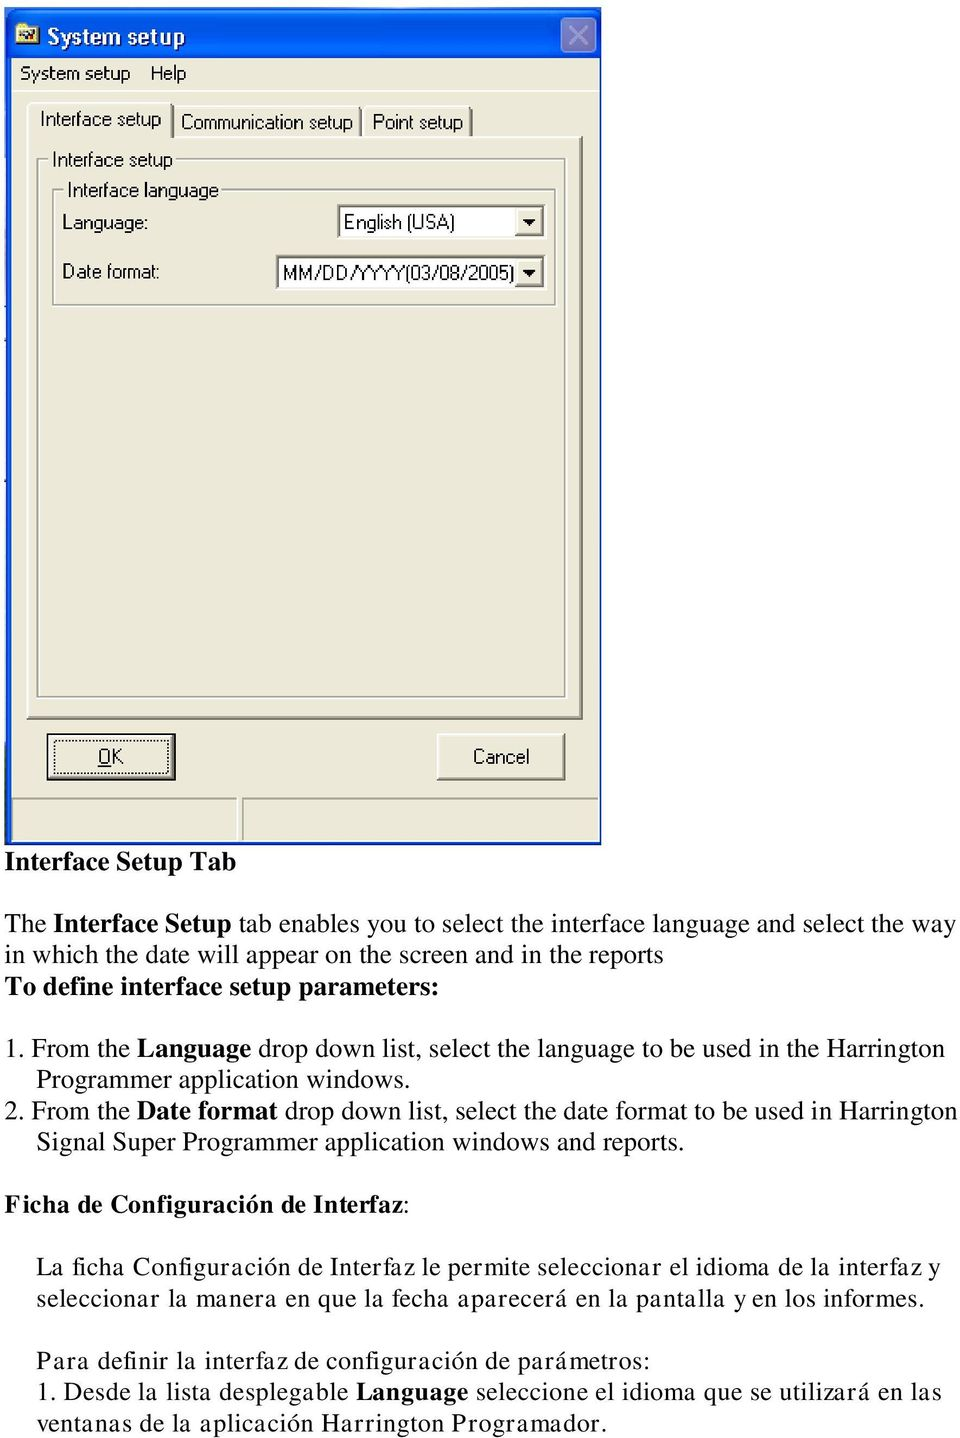 From the Date format drop down list, select the date format to be used in Harrington Signal Super Programmer application windows and reports.